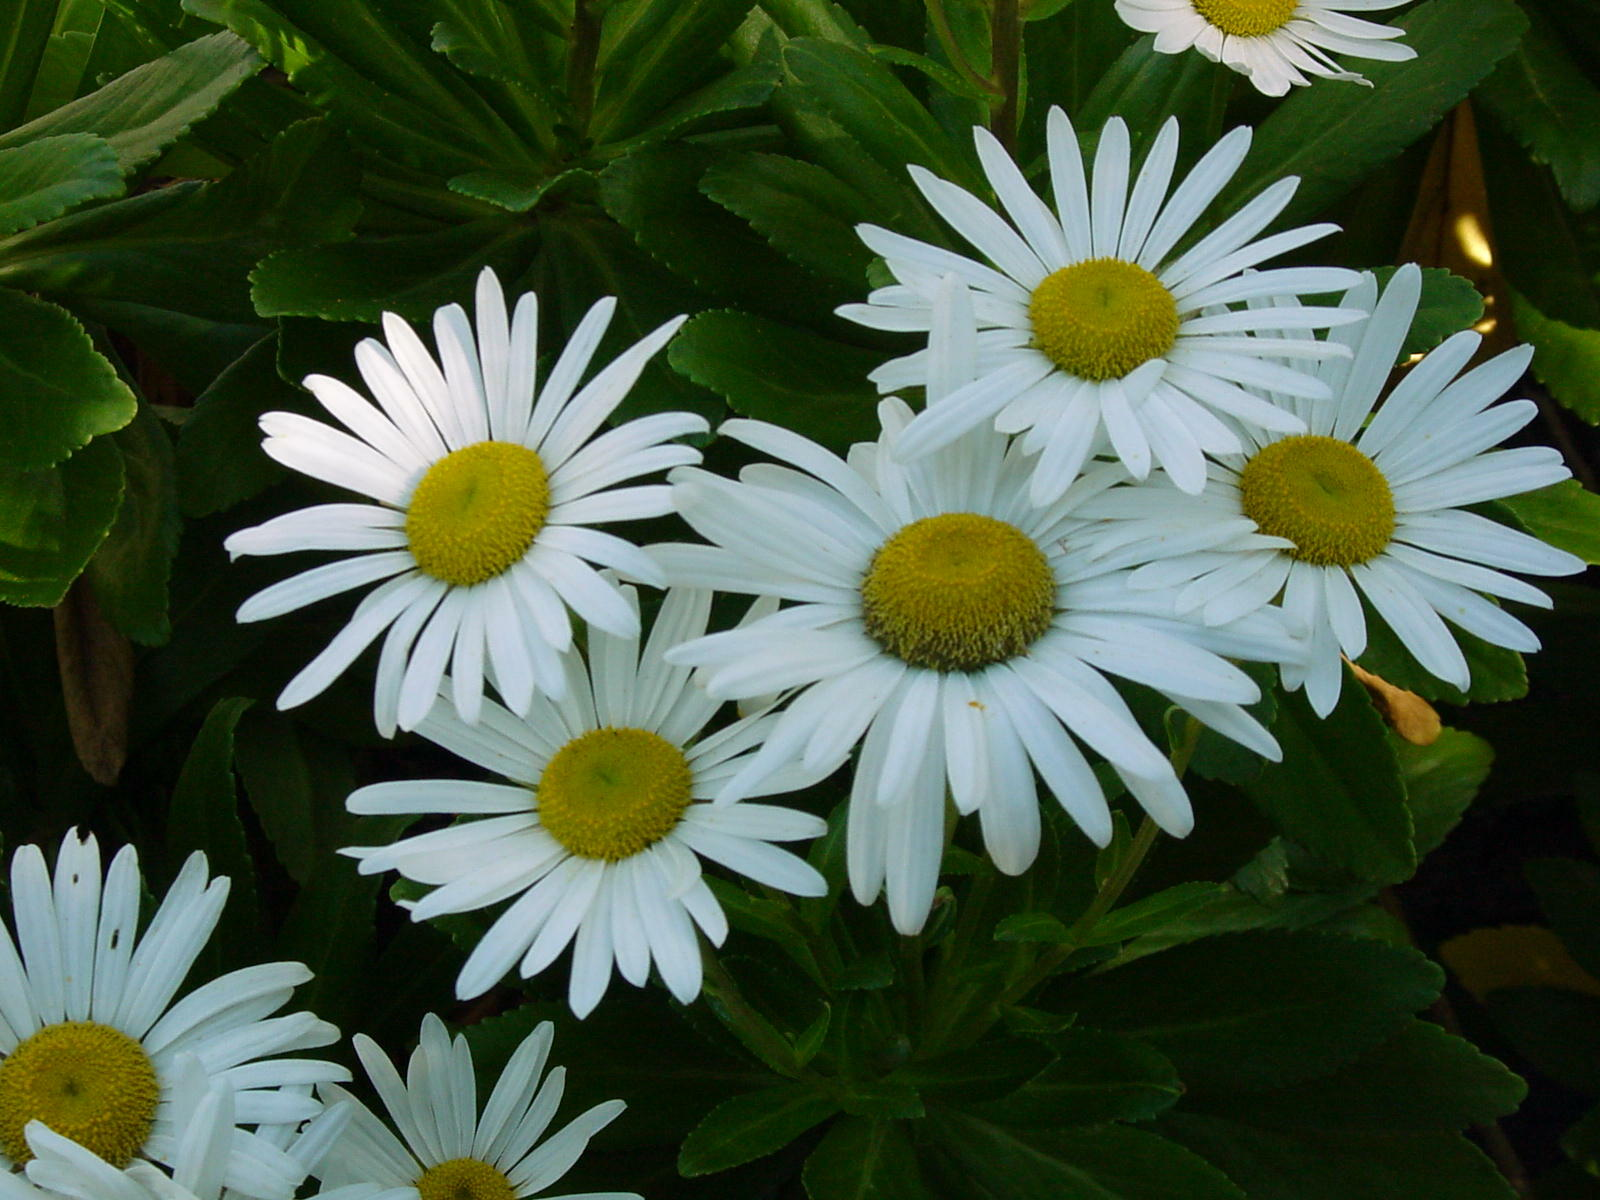 Blooming now in a garden near you, the famous Montauk daisy, native to Japan but naturalized along the sandy shores of the East End. Disease and insect free, a great pollinator and a late feeding spot for honeybees and monarch butterflies. Sorry, only available in white.